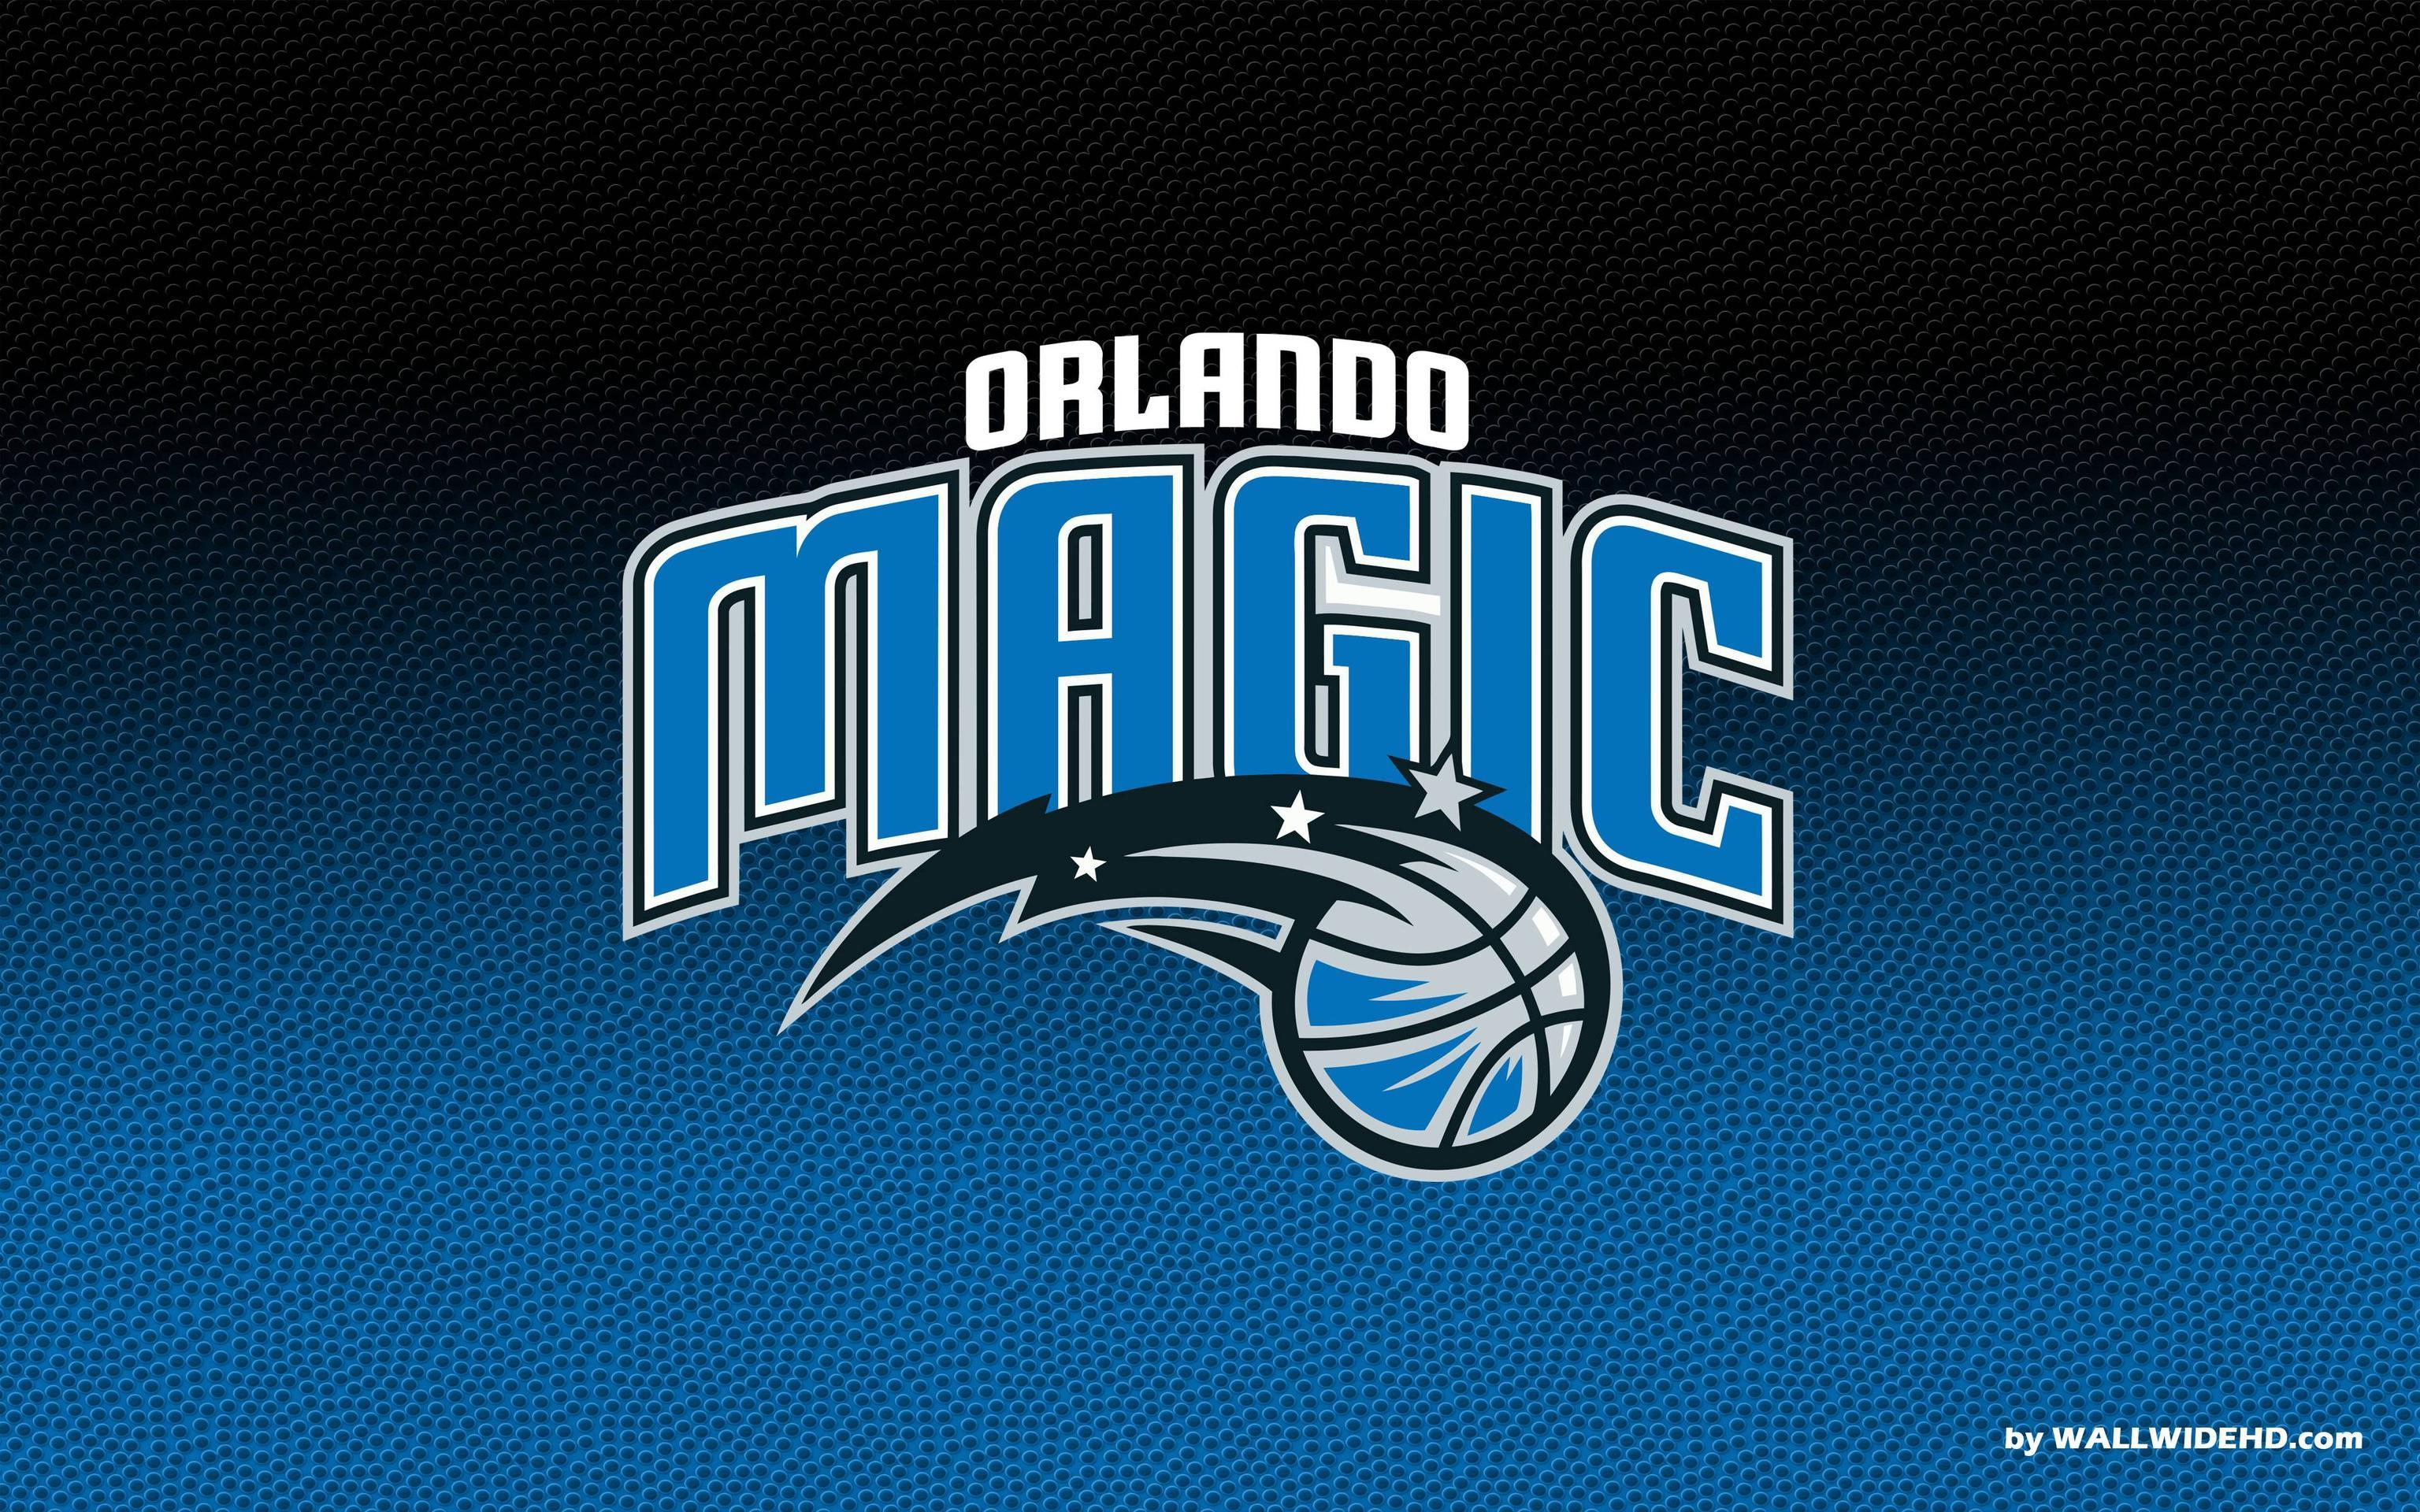 Orlando Magic 2014 Logo NBA Wallpapers Wide or HD